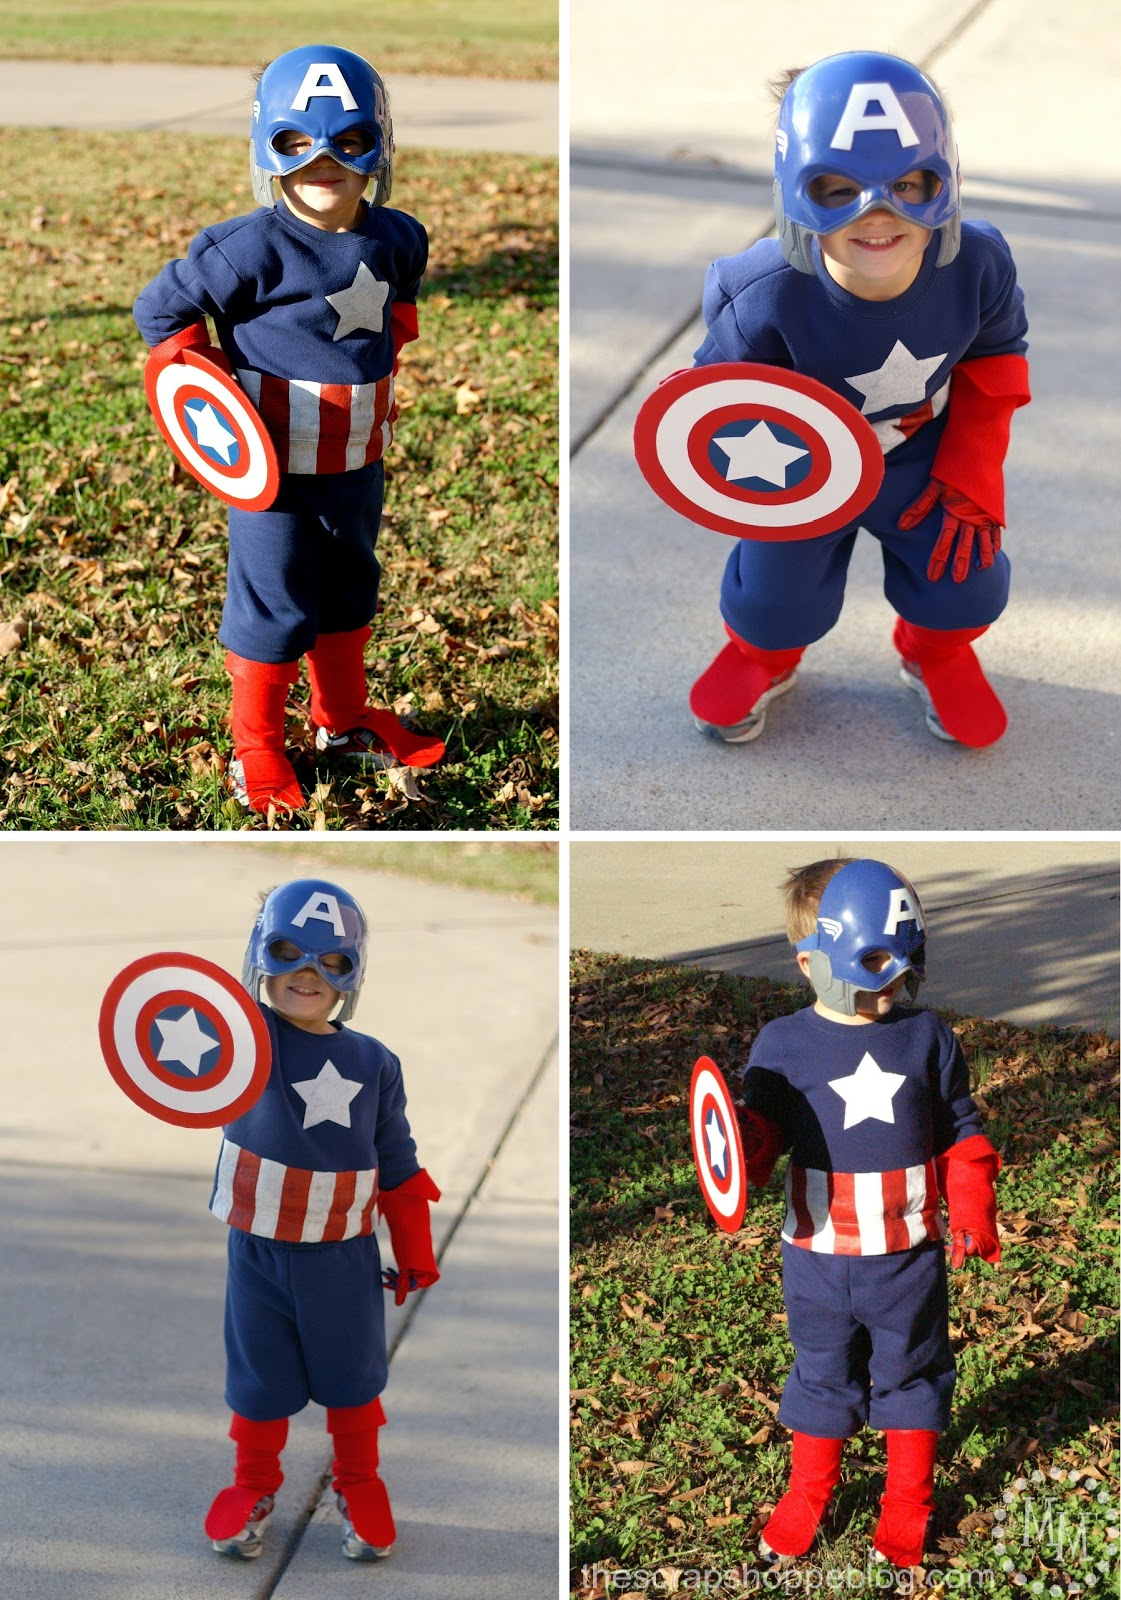 Diy captain america thor costumes the scrap shoppe i think its pretty safe to say that captain america is quite pleased with his costume solutioingenieria Choice Image